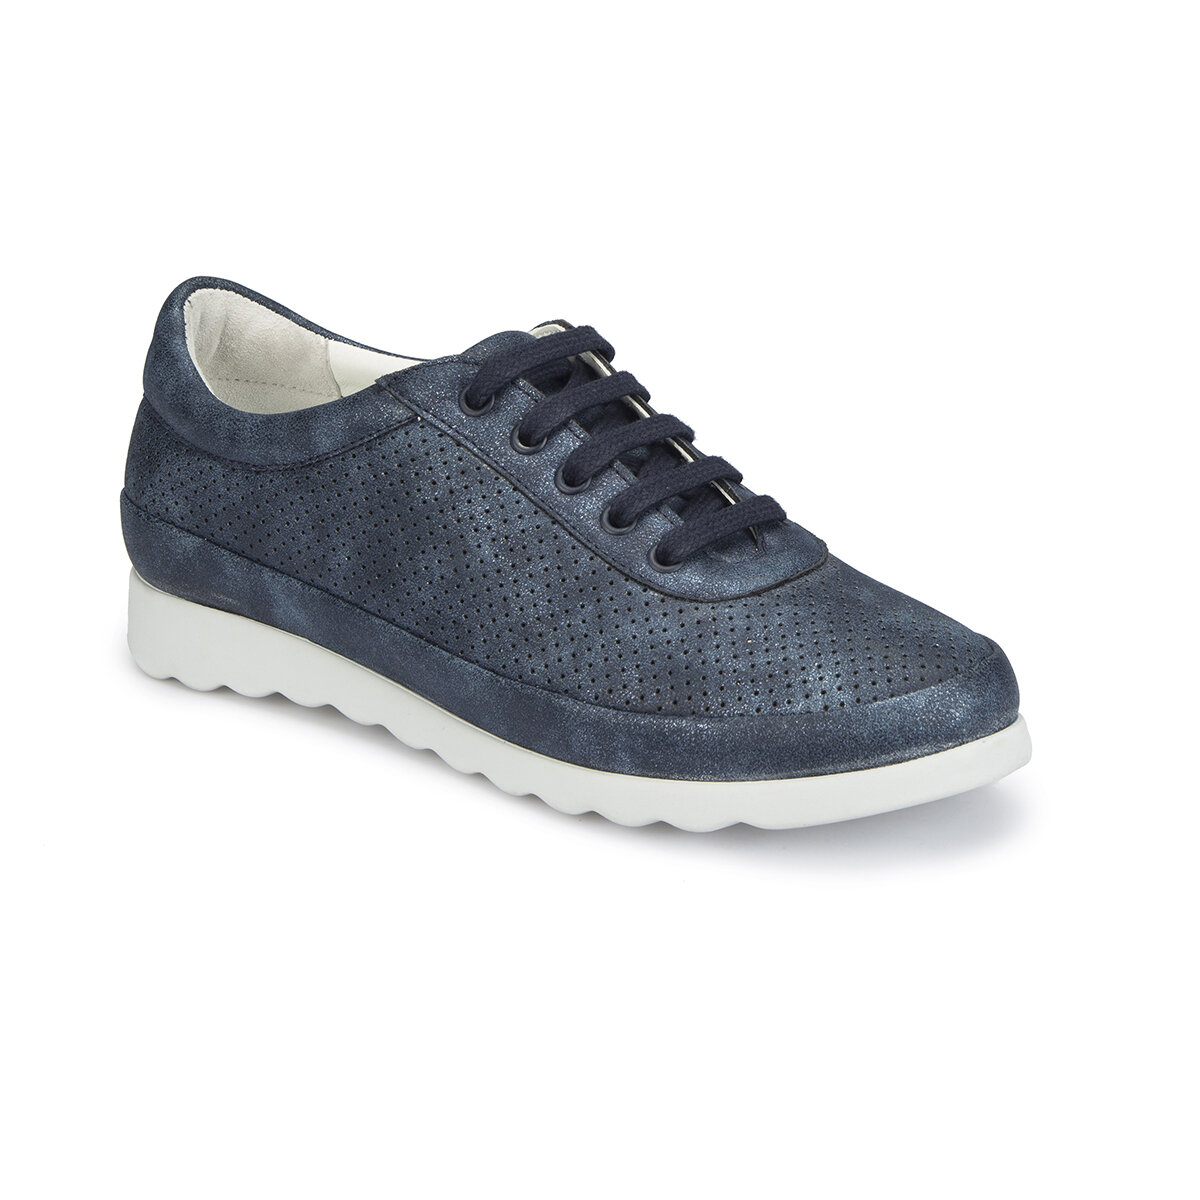 FLO 81.111287.Z Navy Blue Women Basic Comfort Polaris